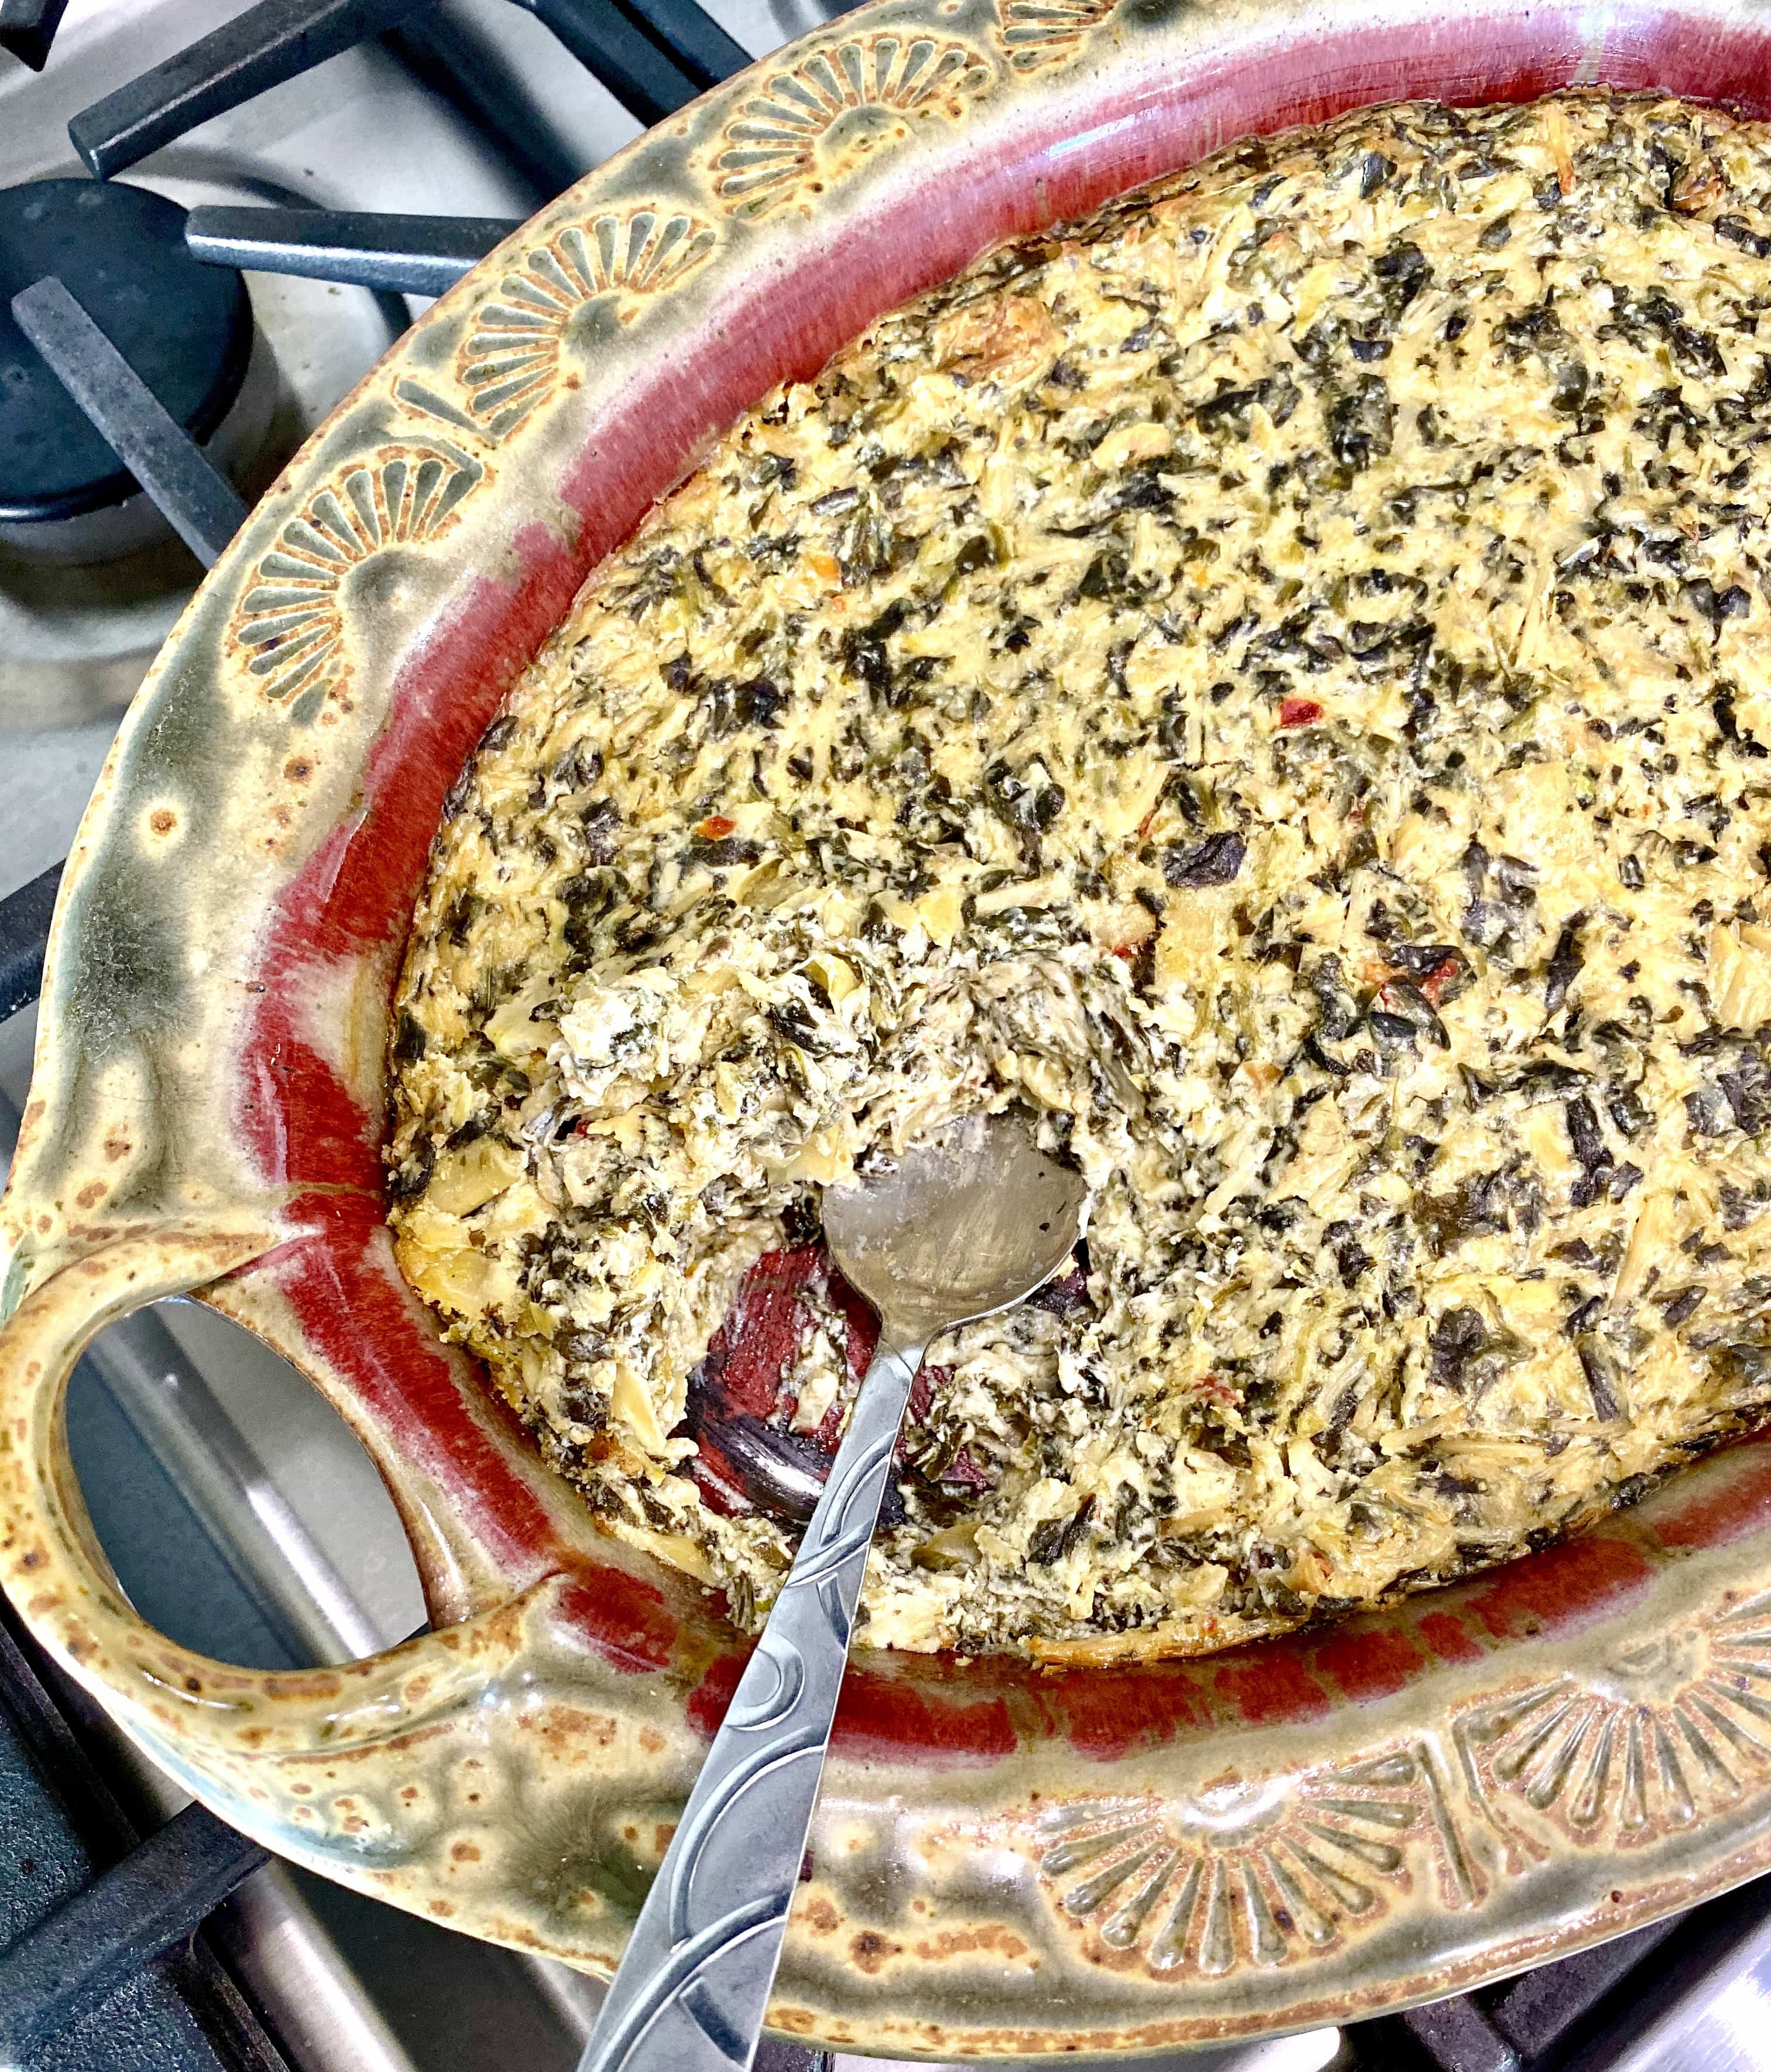 spinach artichoke dip in a red pottery dish